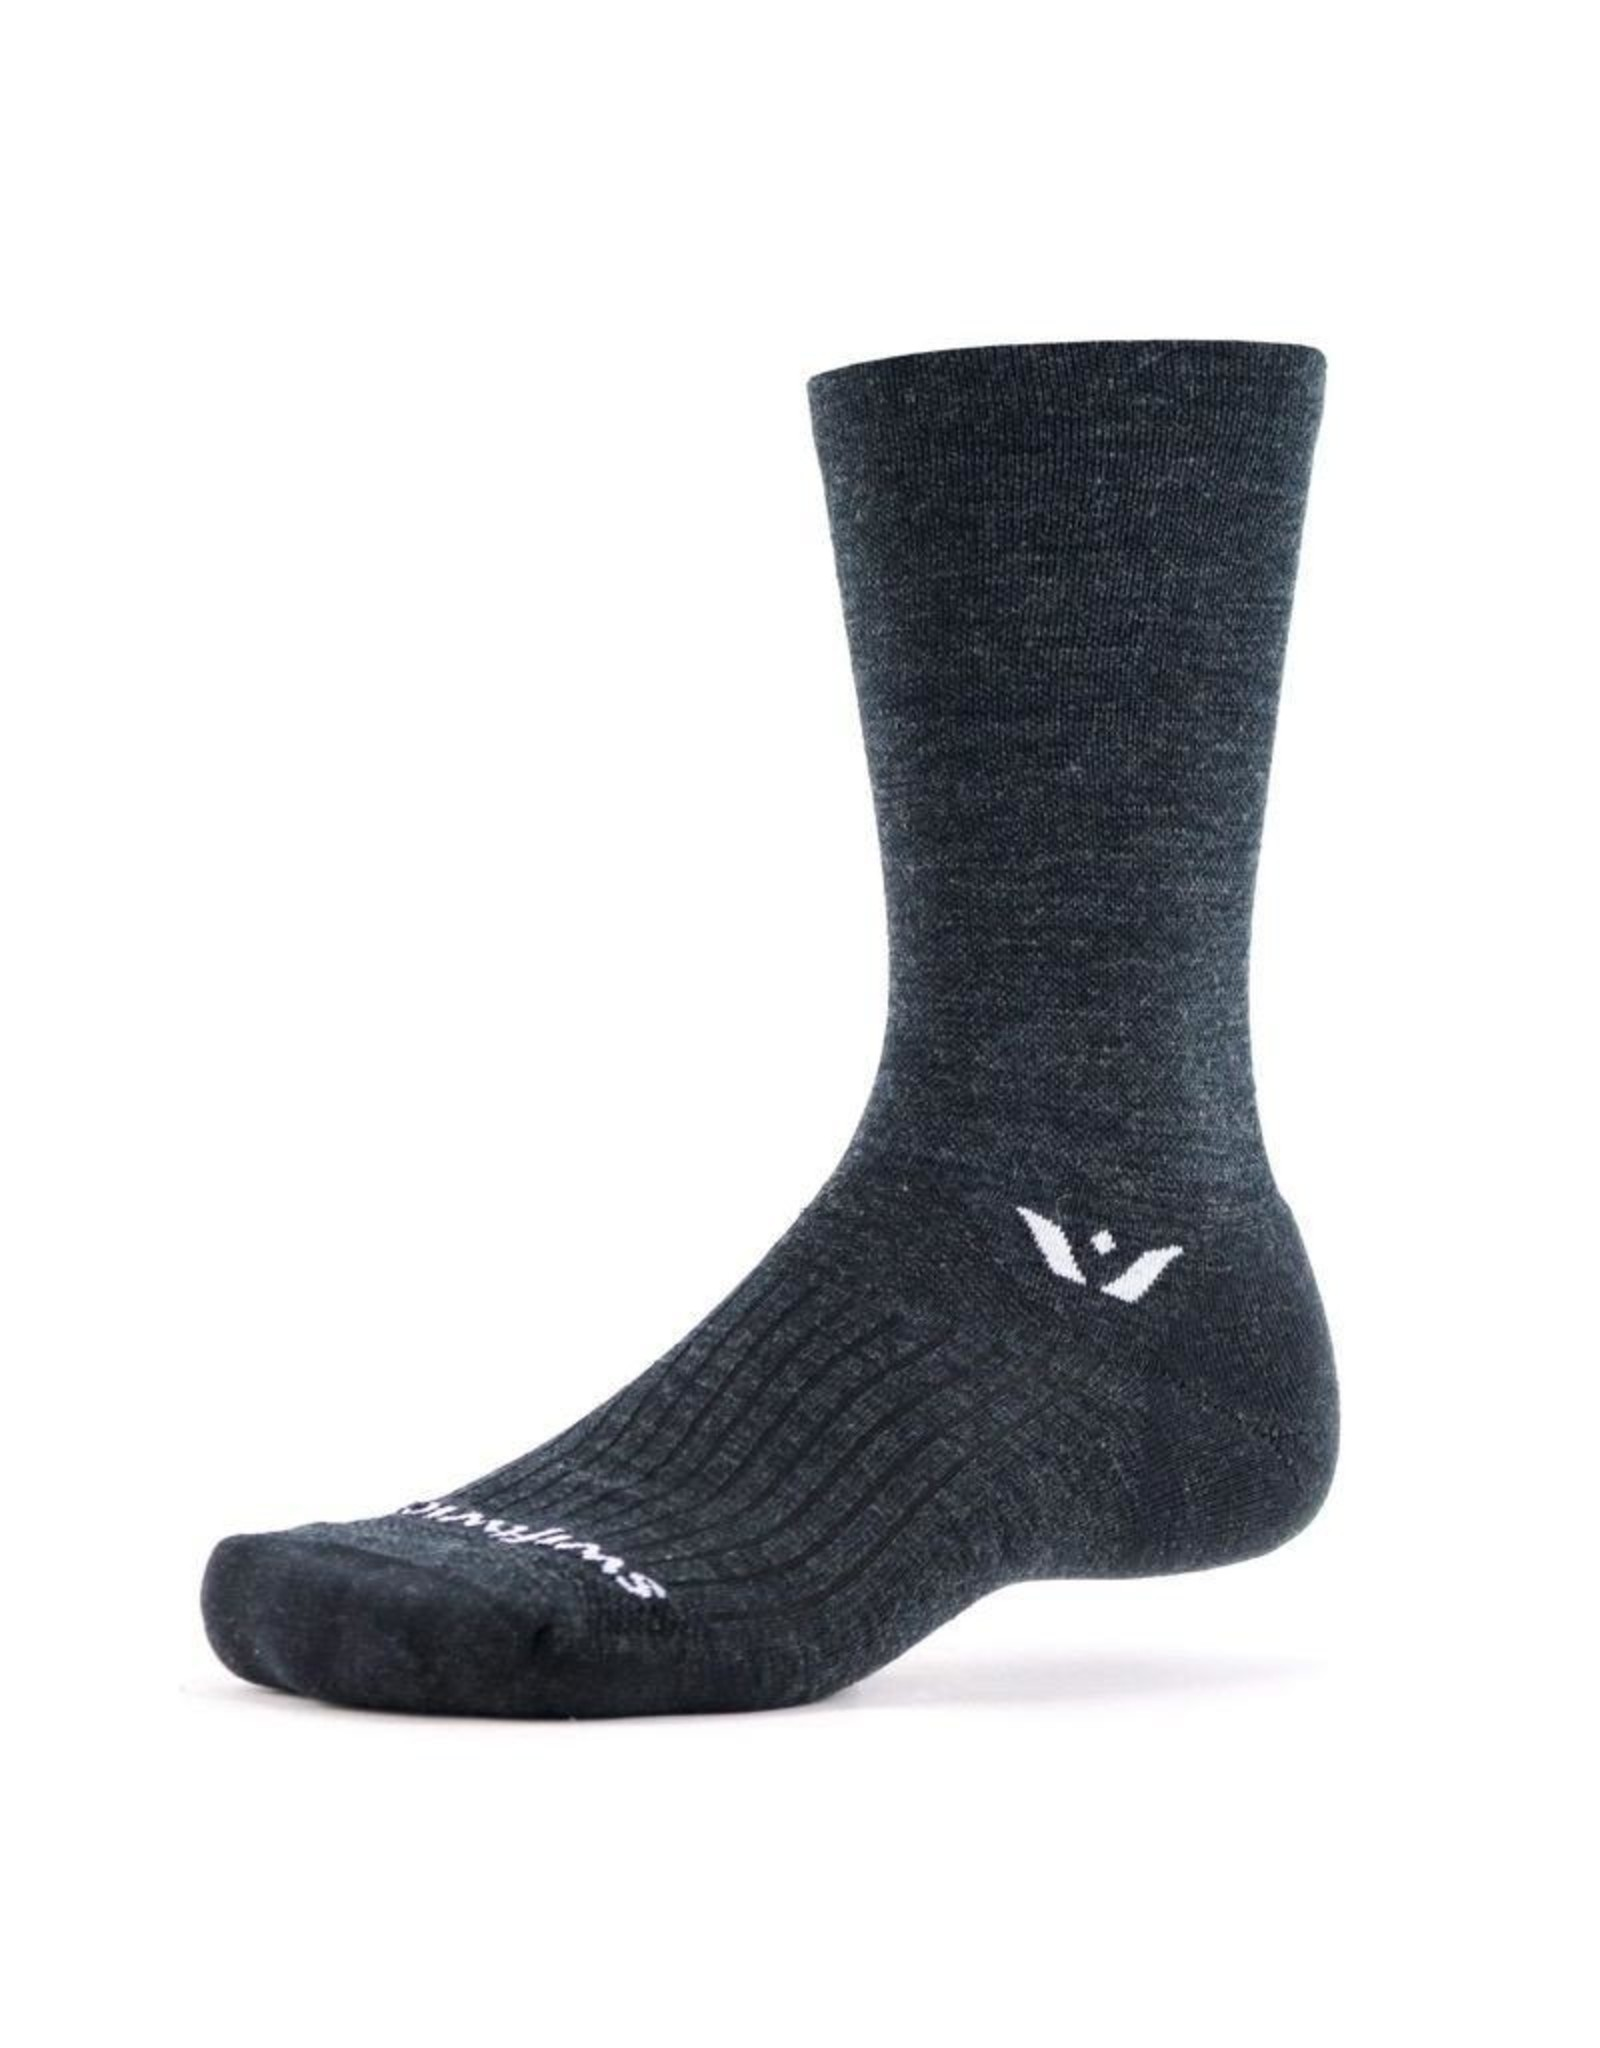 SWIFTWICK Swiftwick Pursuit Seven